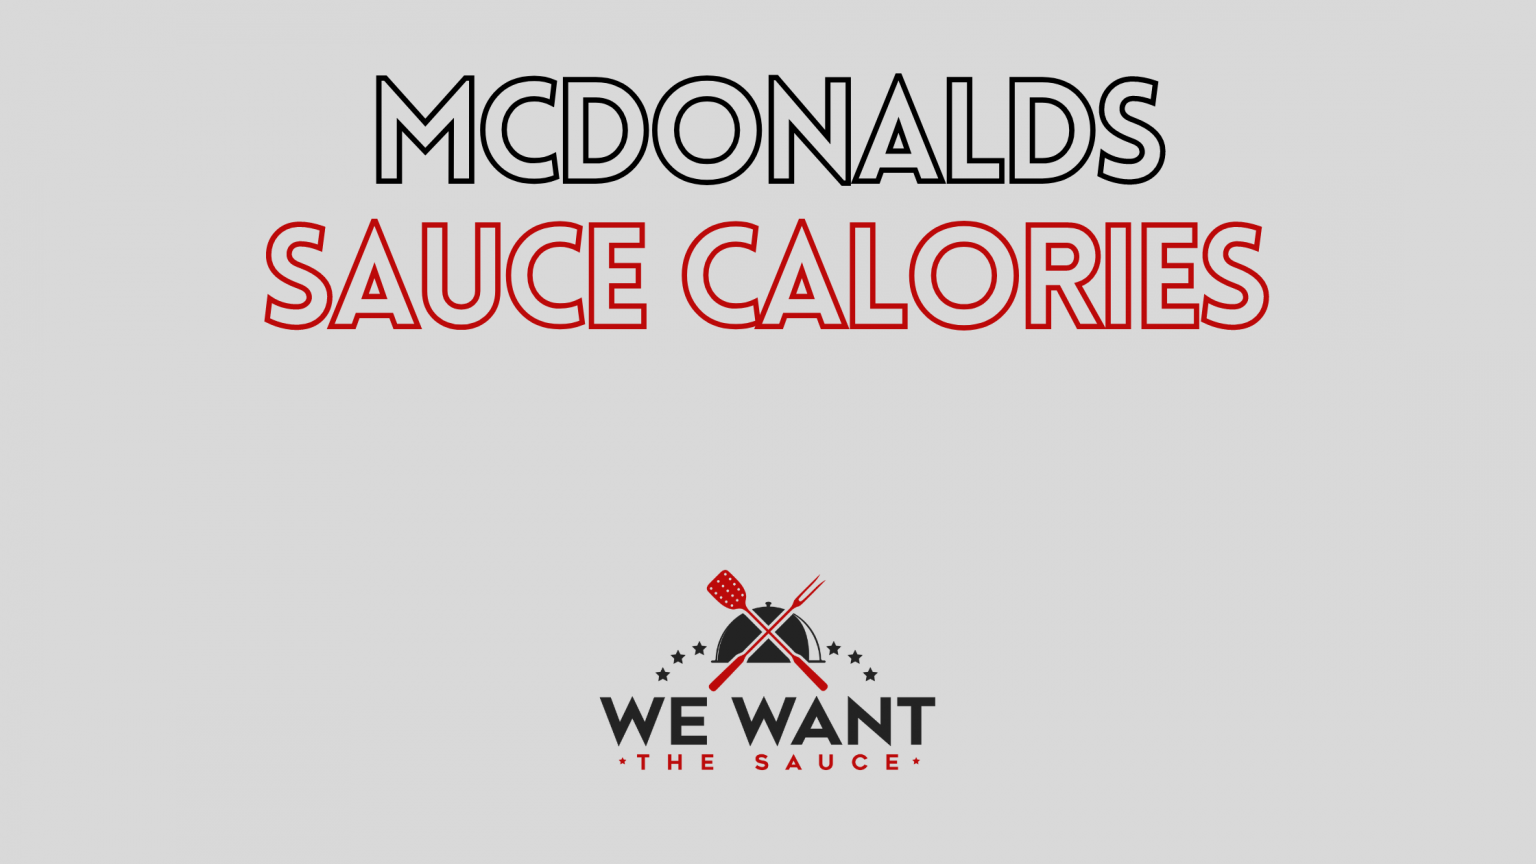 McDonald's Sauce Calories - What You Need To Know